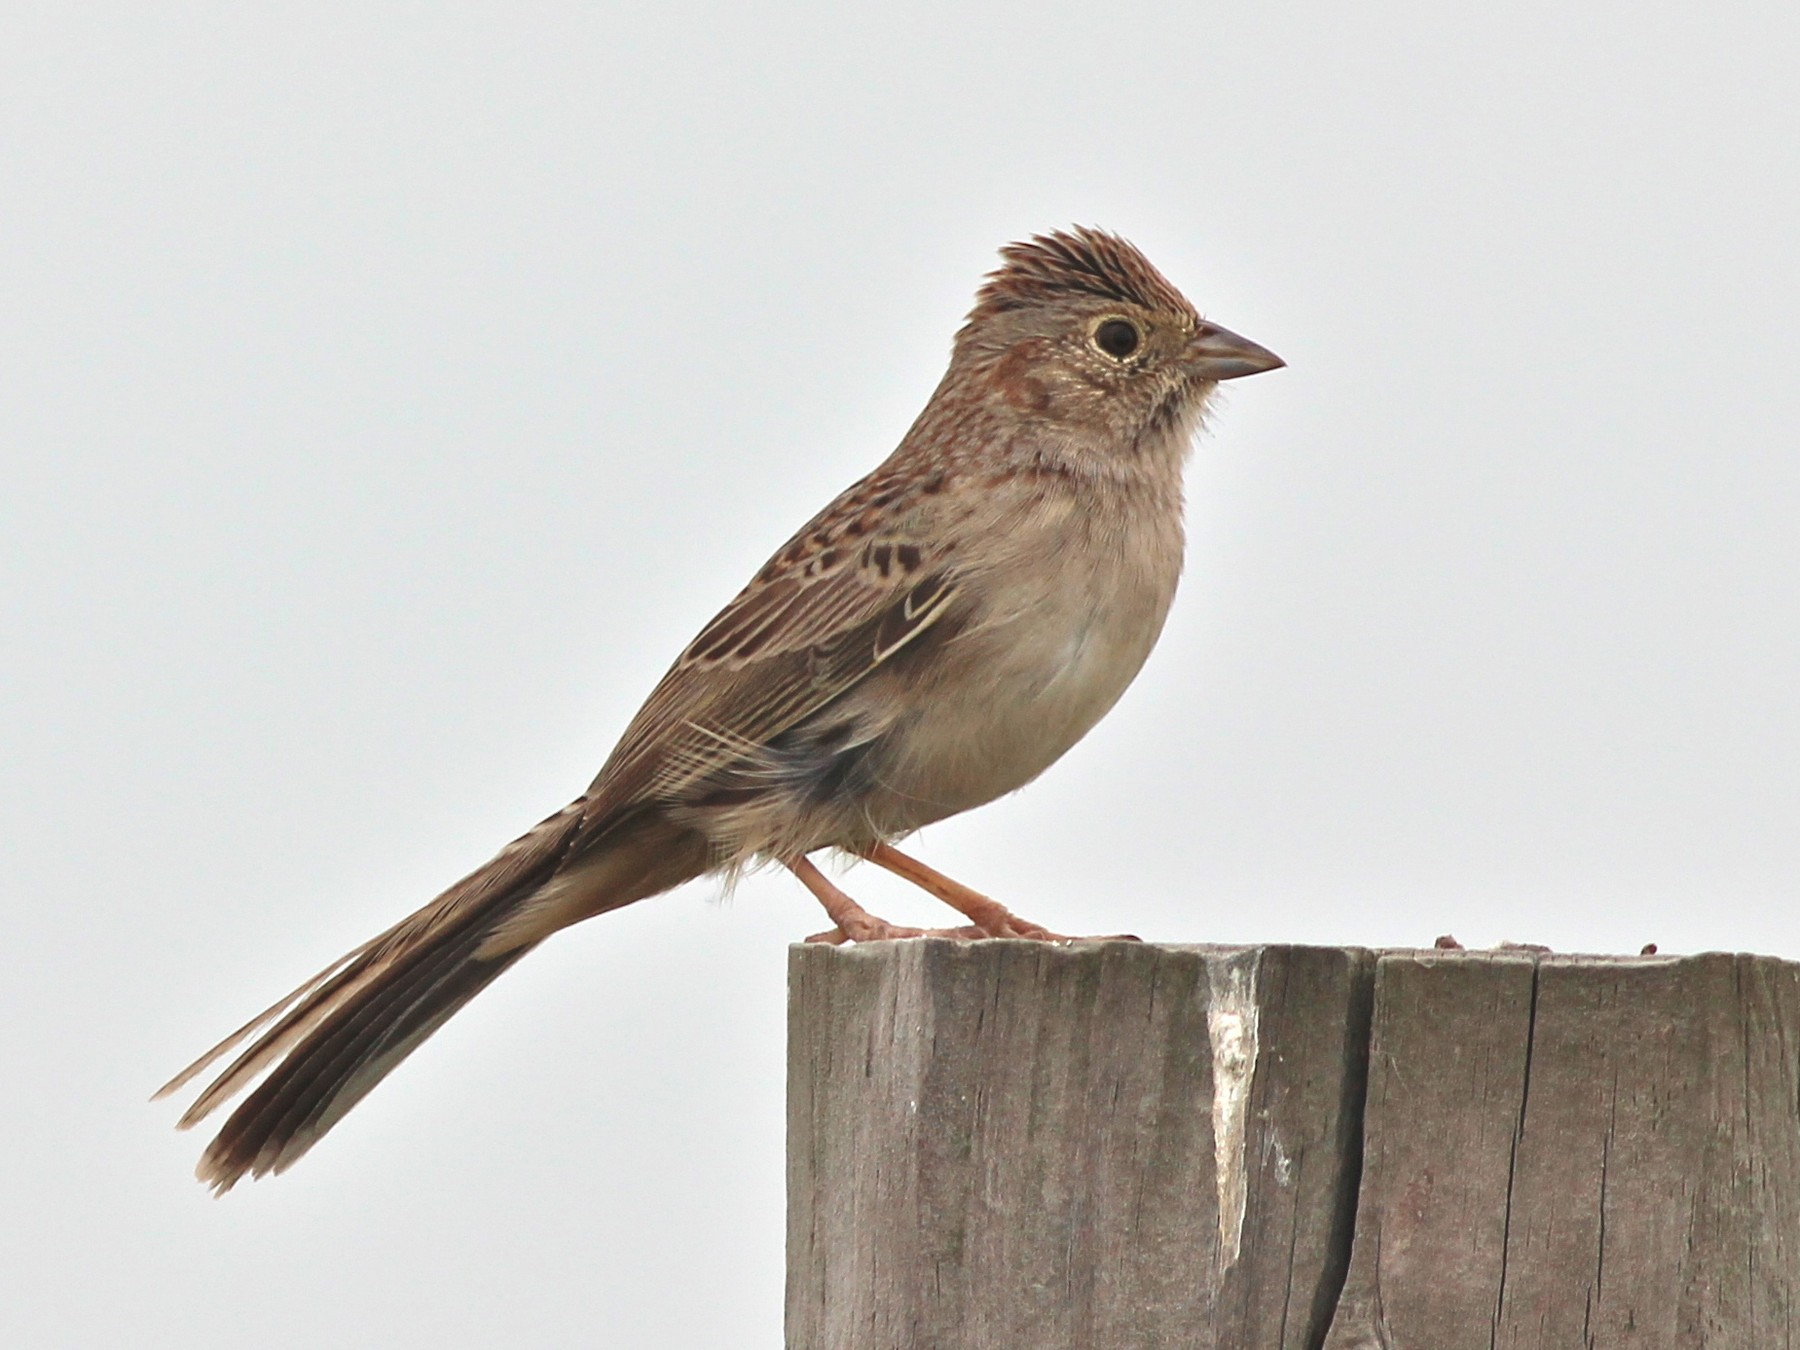 Cassin's Sparrow - Shawn Billerman